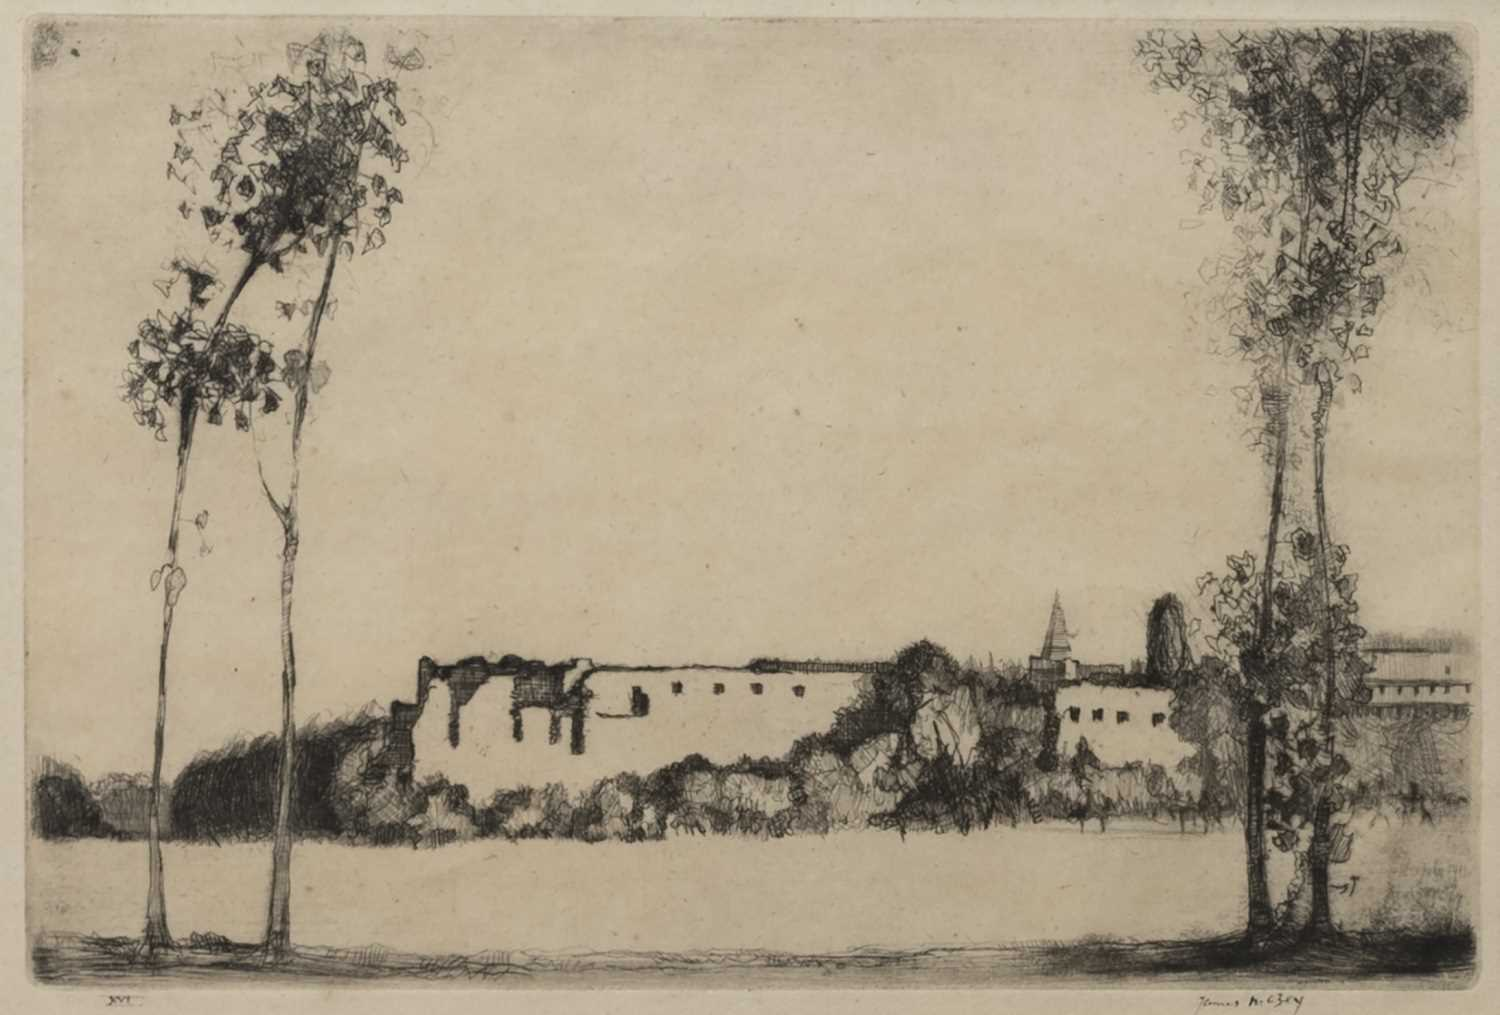 Lot 126 - POITIERS, AN ETCHING BY JAMES MCBEY